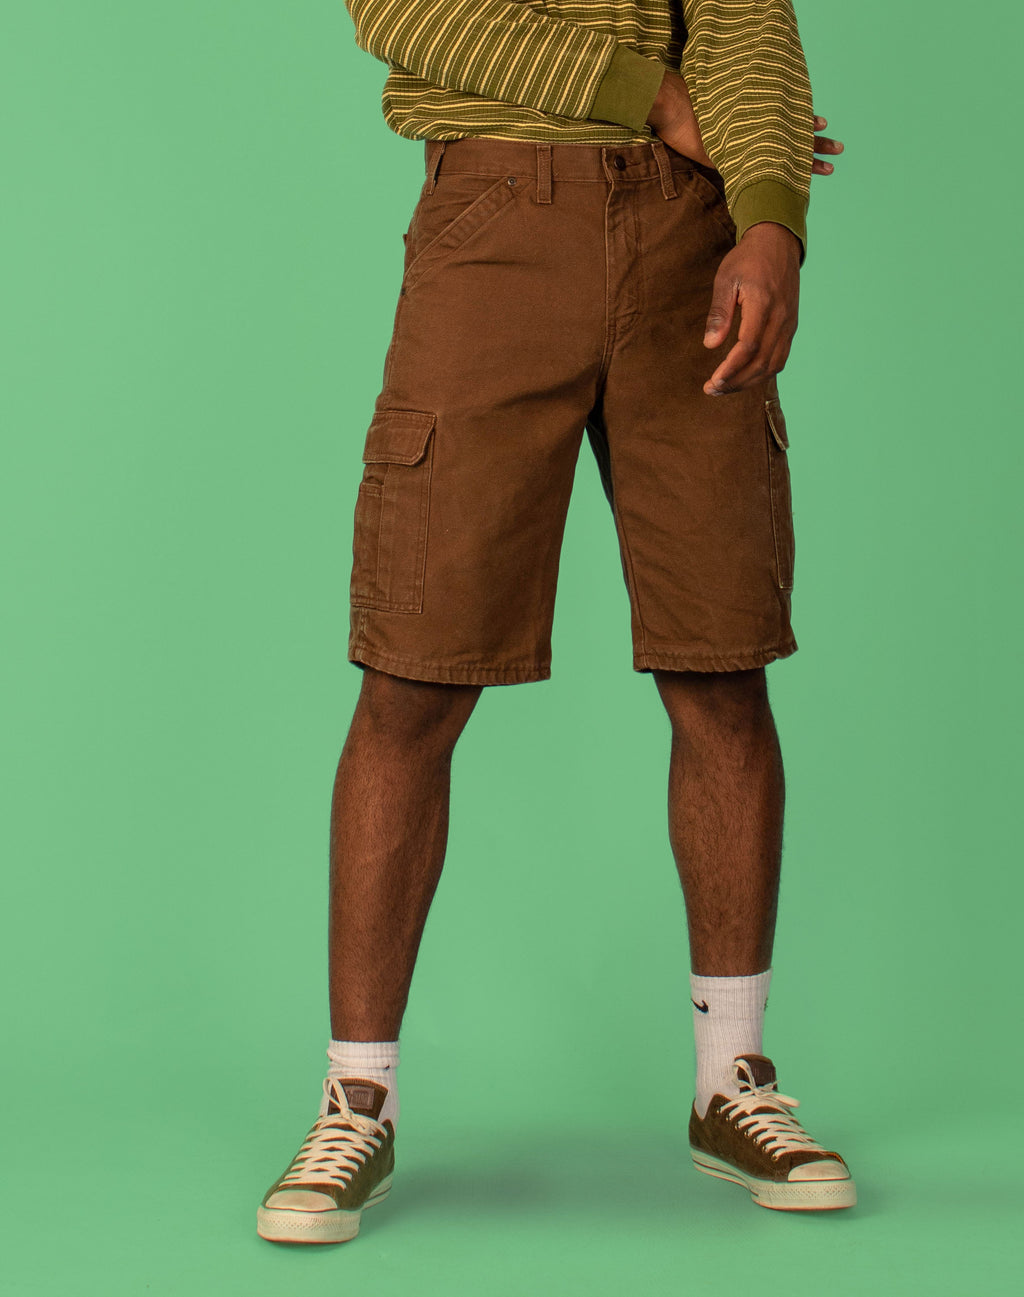 DICKIES BROWN SHORTS